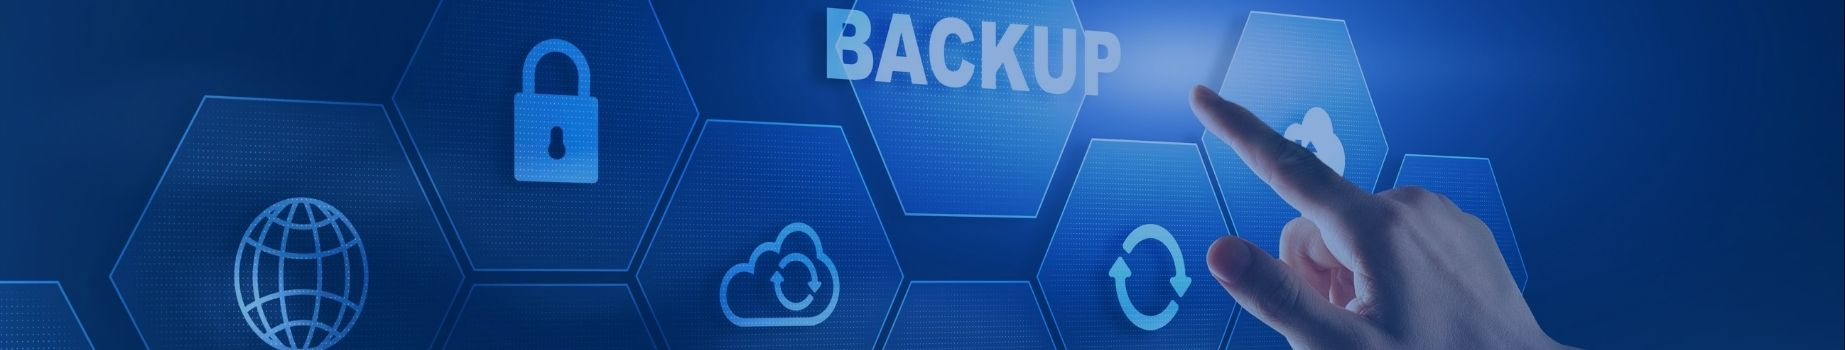 Backup & Recovery Resources